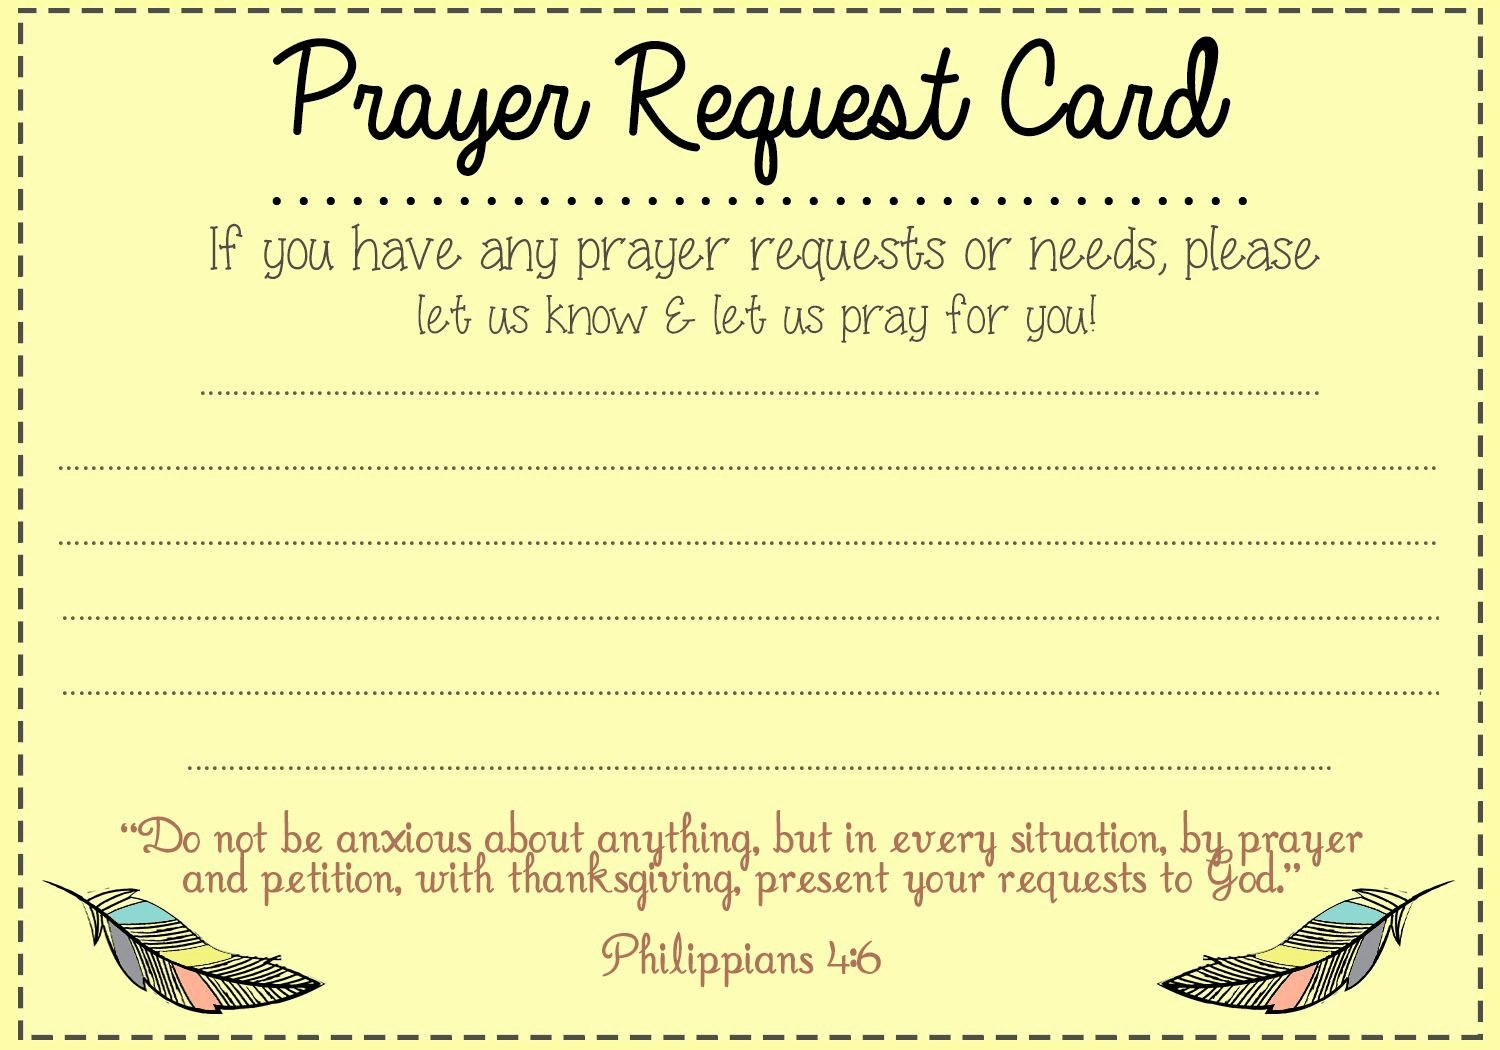 Free Prayer Card Template for Word Fresh Prayer Request Card Idea Mops Pinterest